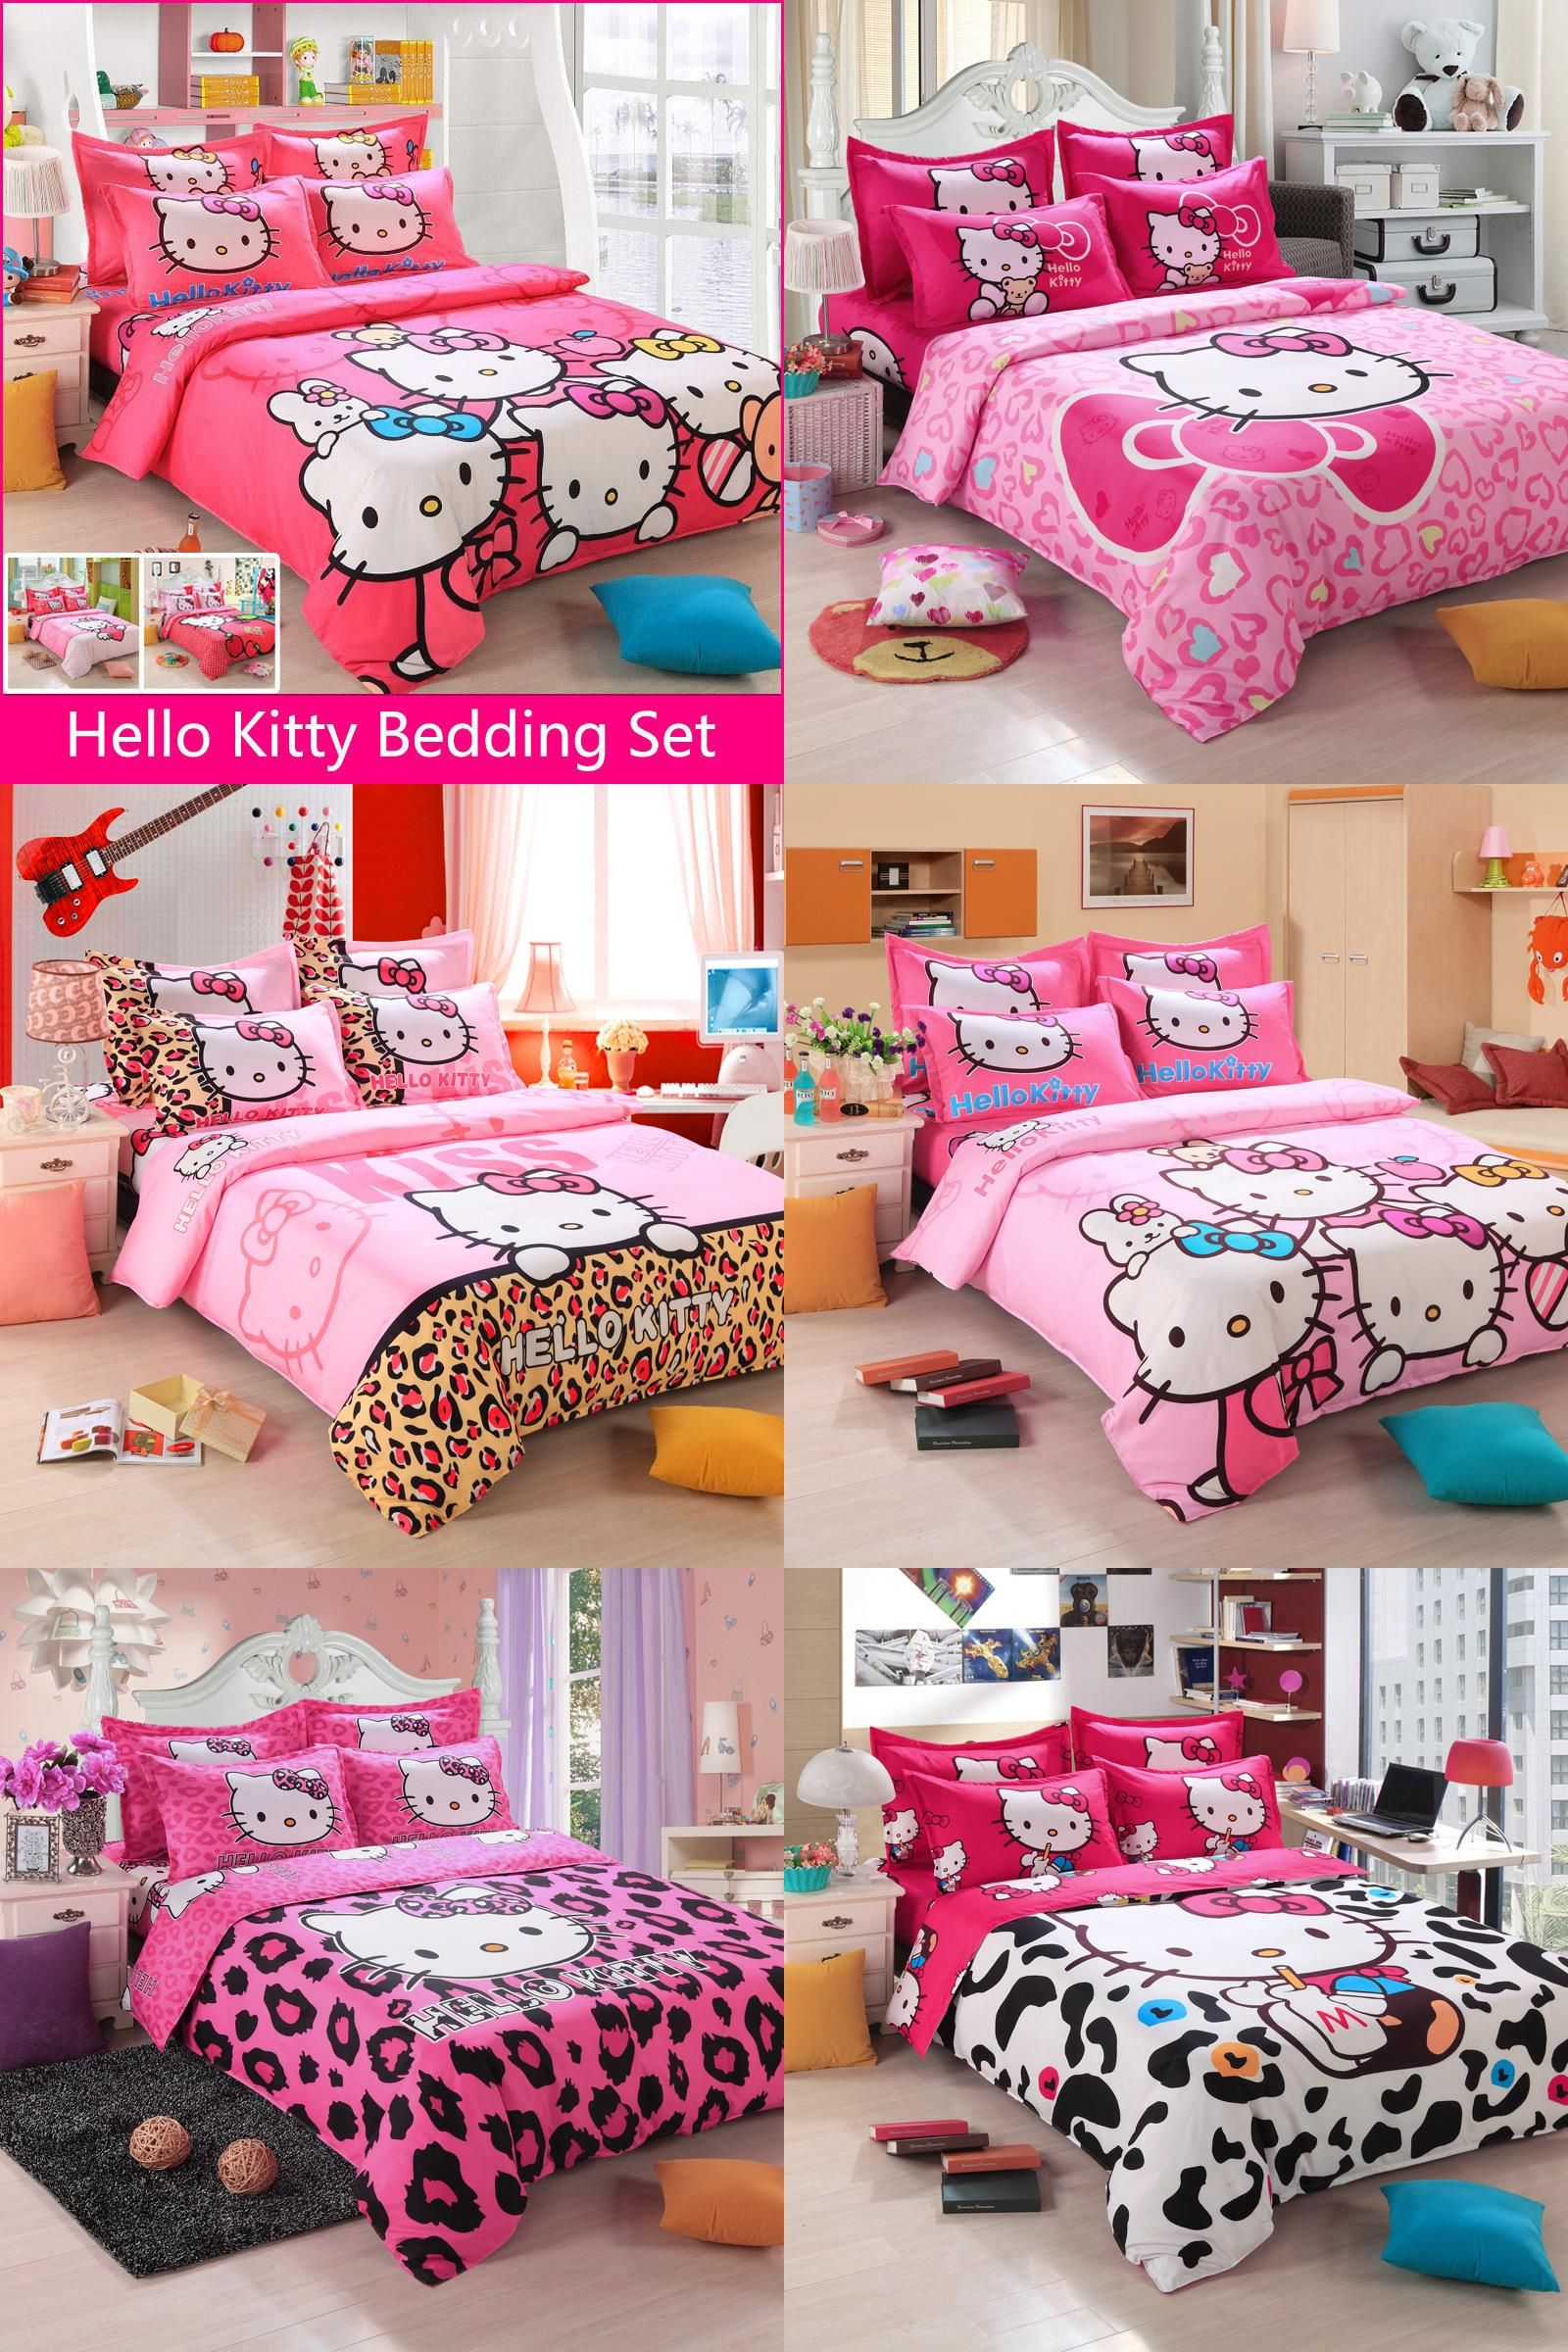 ac9bf37b2 [Visit to Buy] Brand Logo Hello Kitty Bedding Set Children Cotton Bed  sheets Hello Kitty Duvet Cover Sheet Pillowcase King/Queen/Twin 4Pcs BS35 #  ...